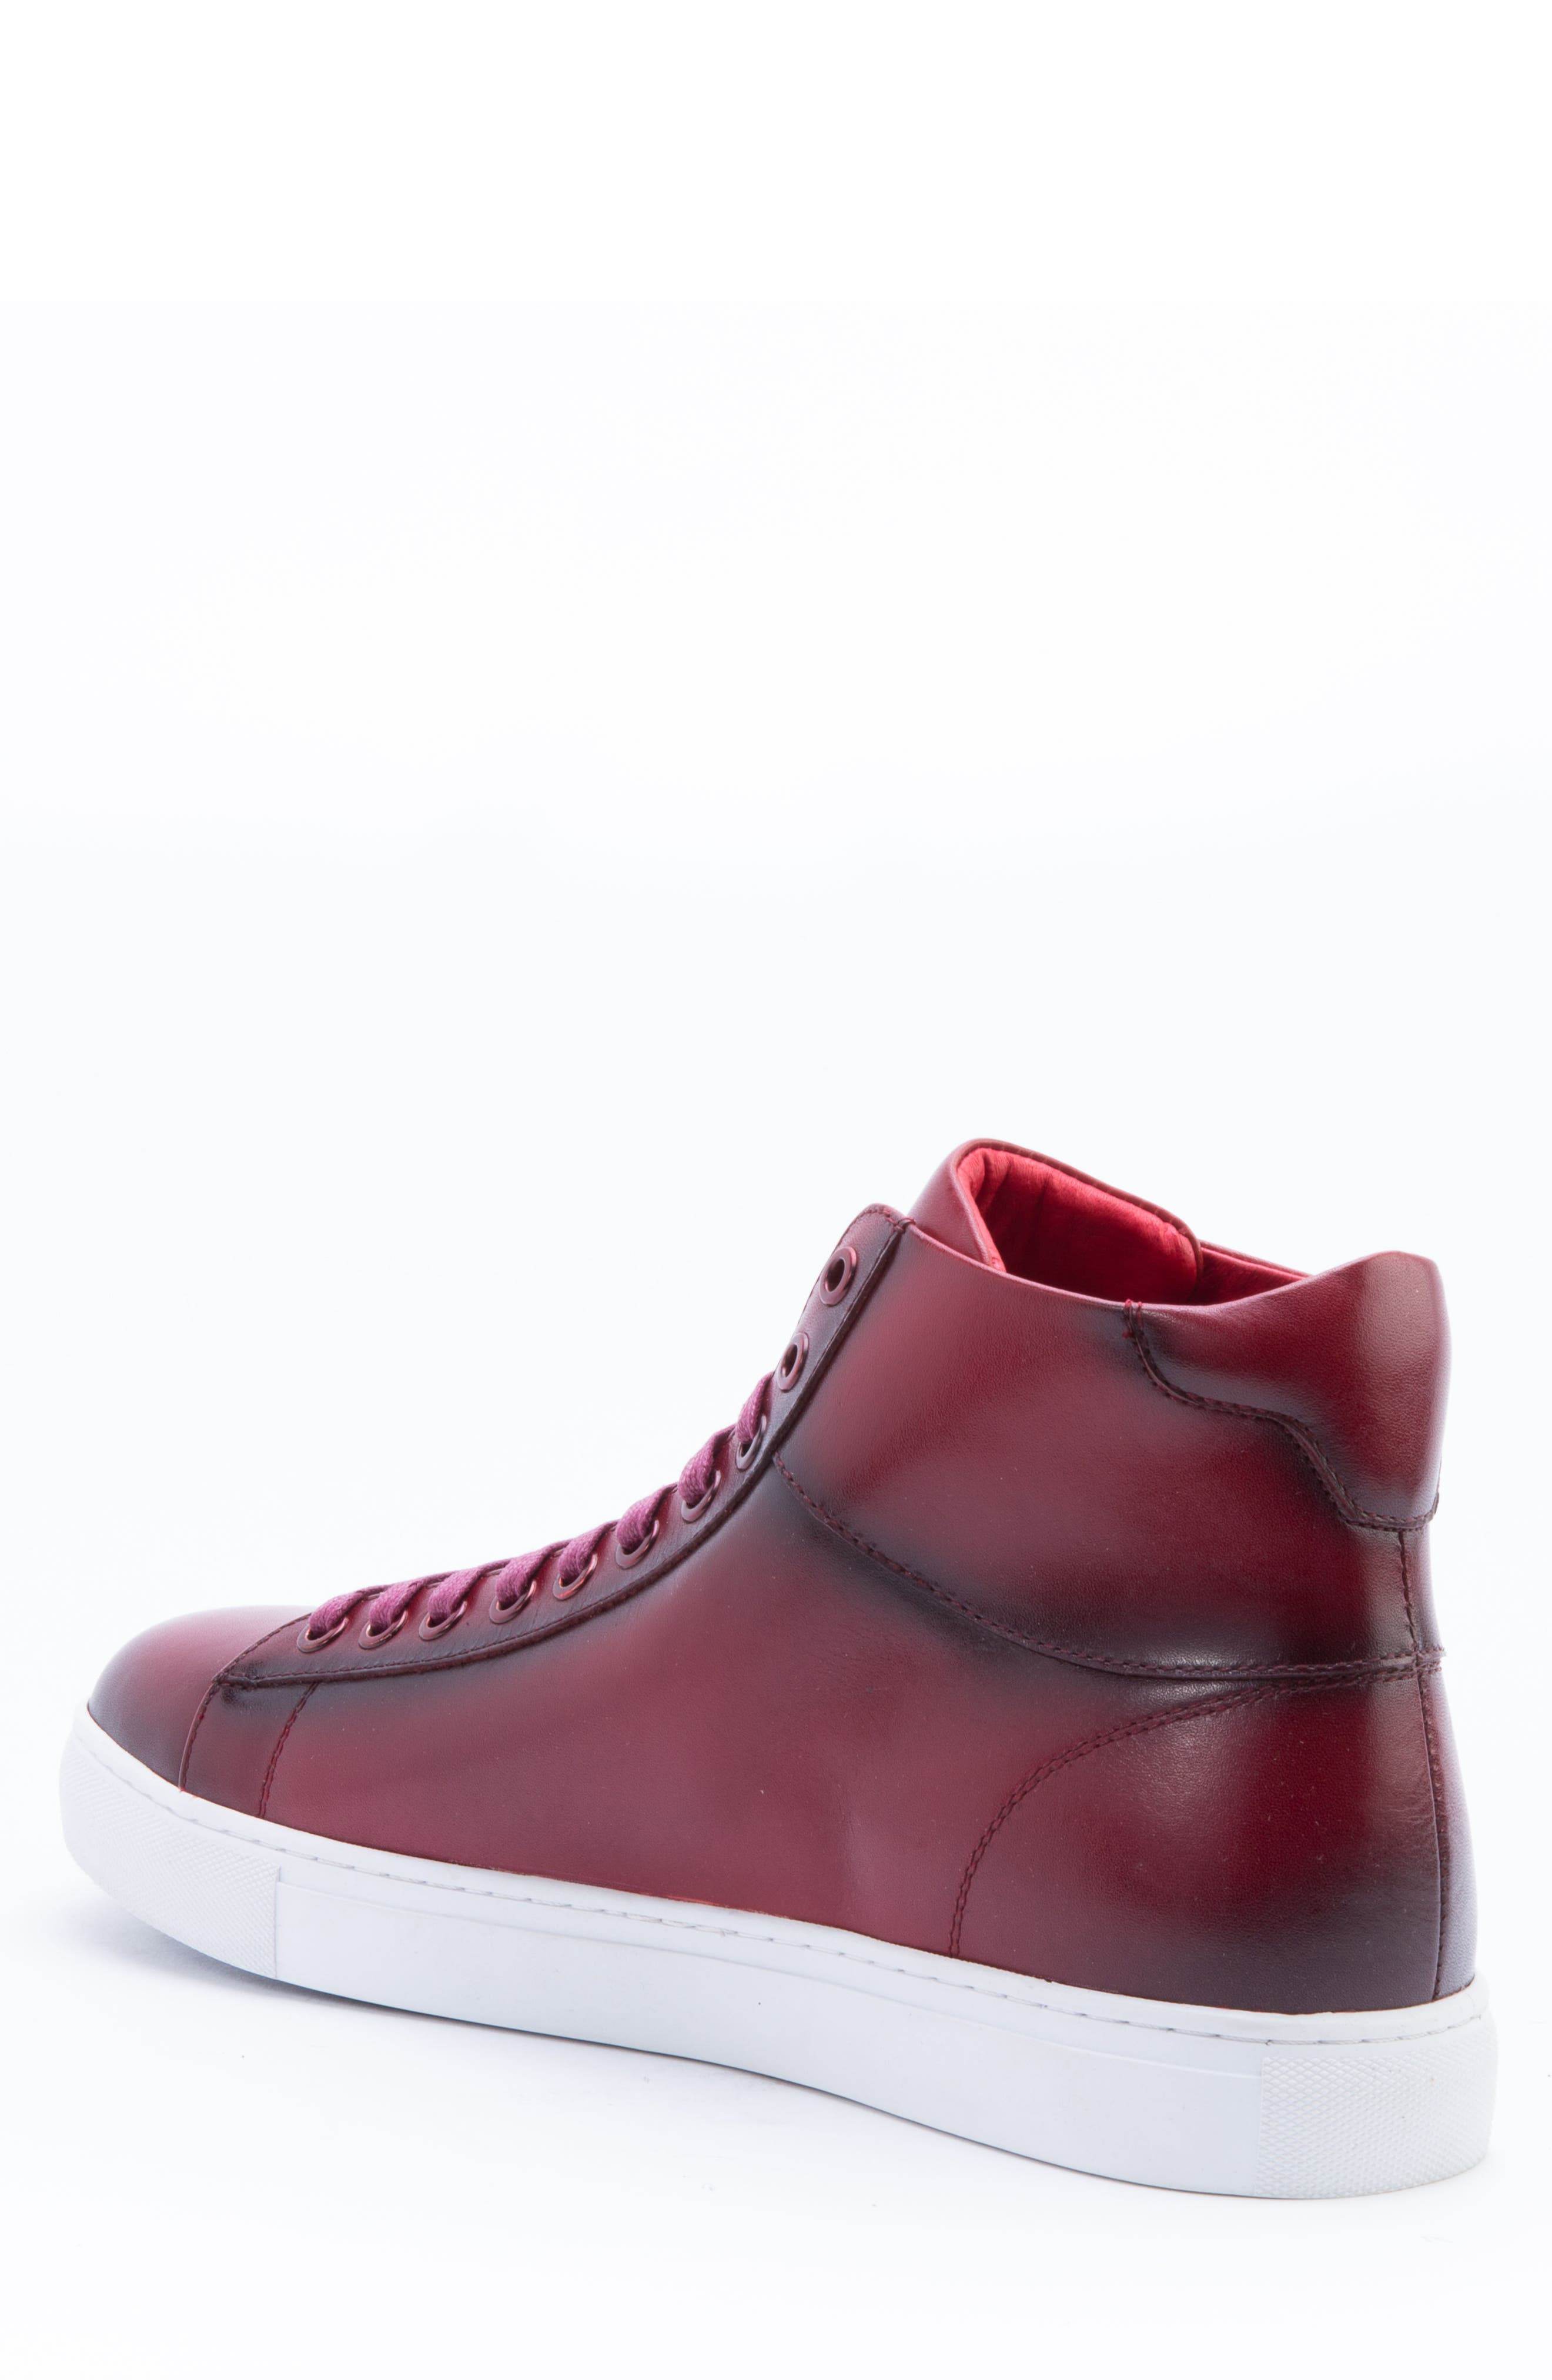 Spinback High Top Sneaker,                             Alternate thumbnail 2, color,                             RED LEATHER